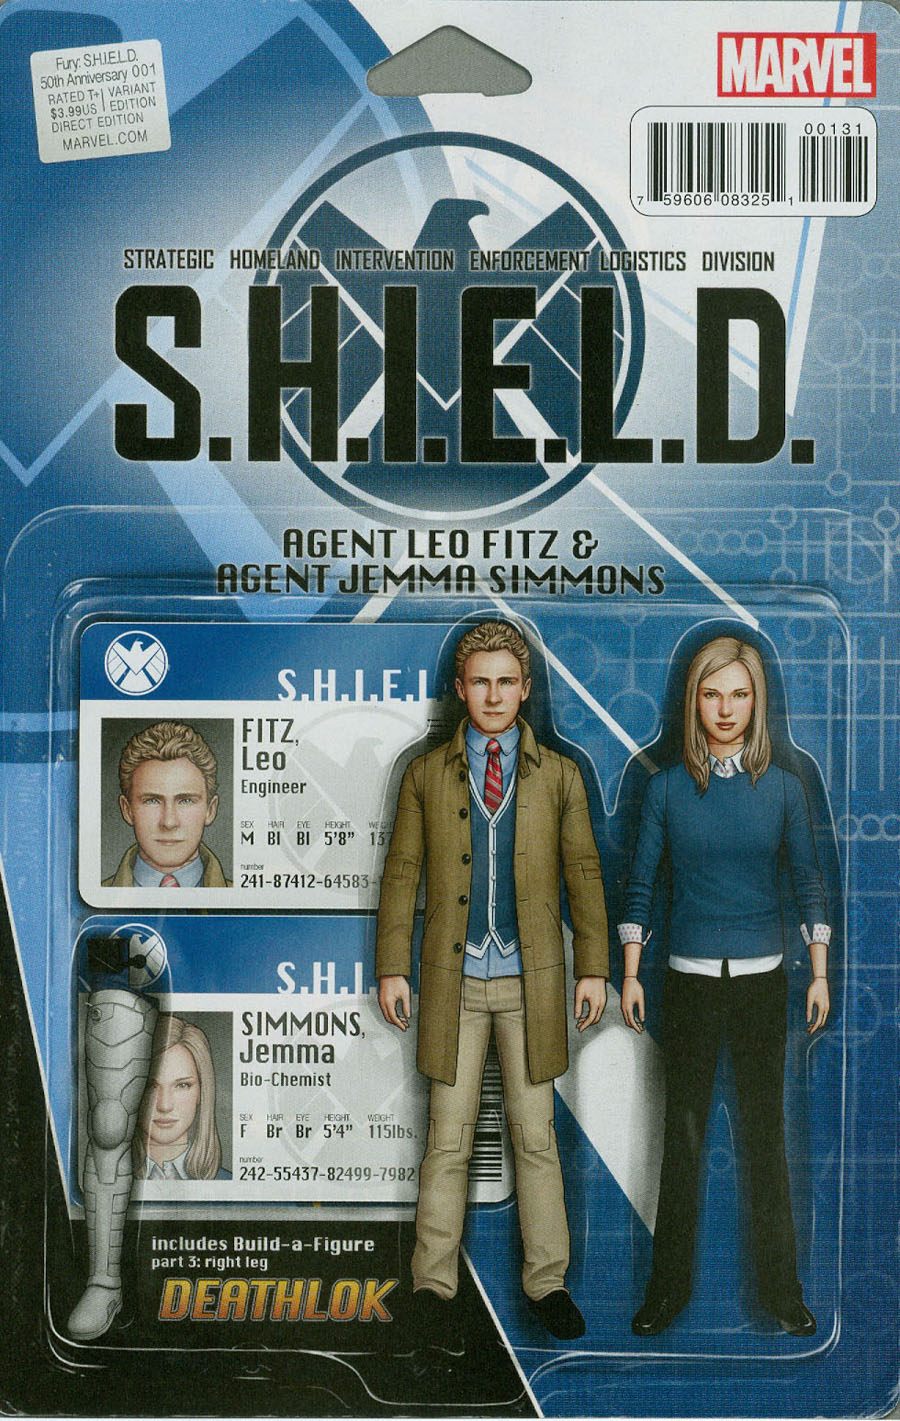 Fury S.H.I.E.L.D. 50th Anniversary #1 Cover C Variant John Tyler Christopher Action Figure Cover